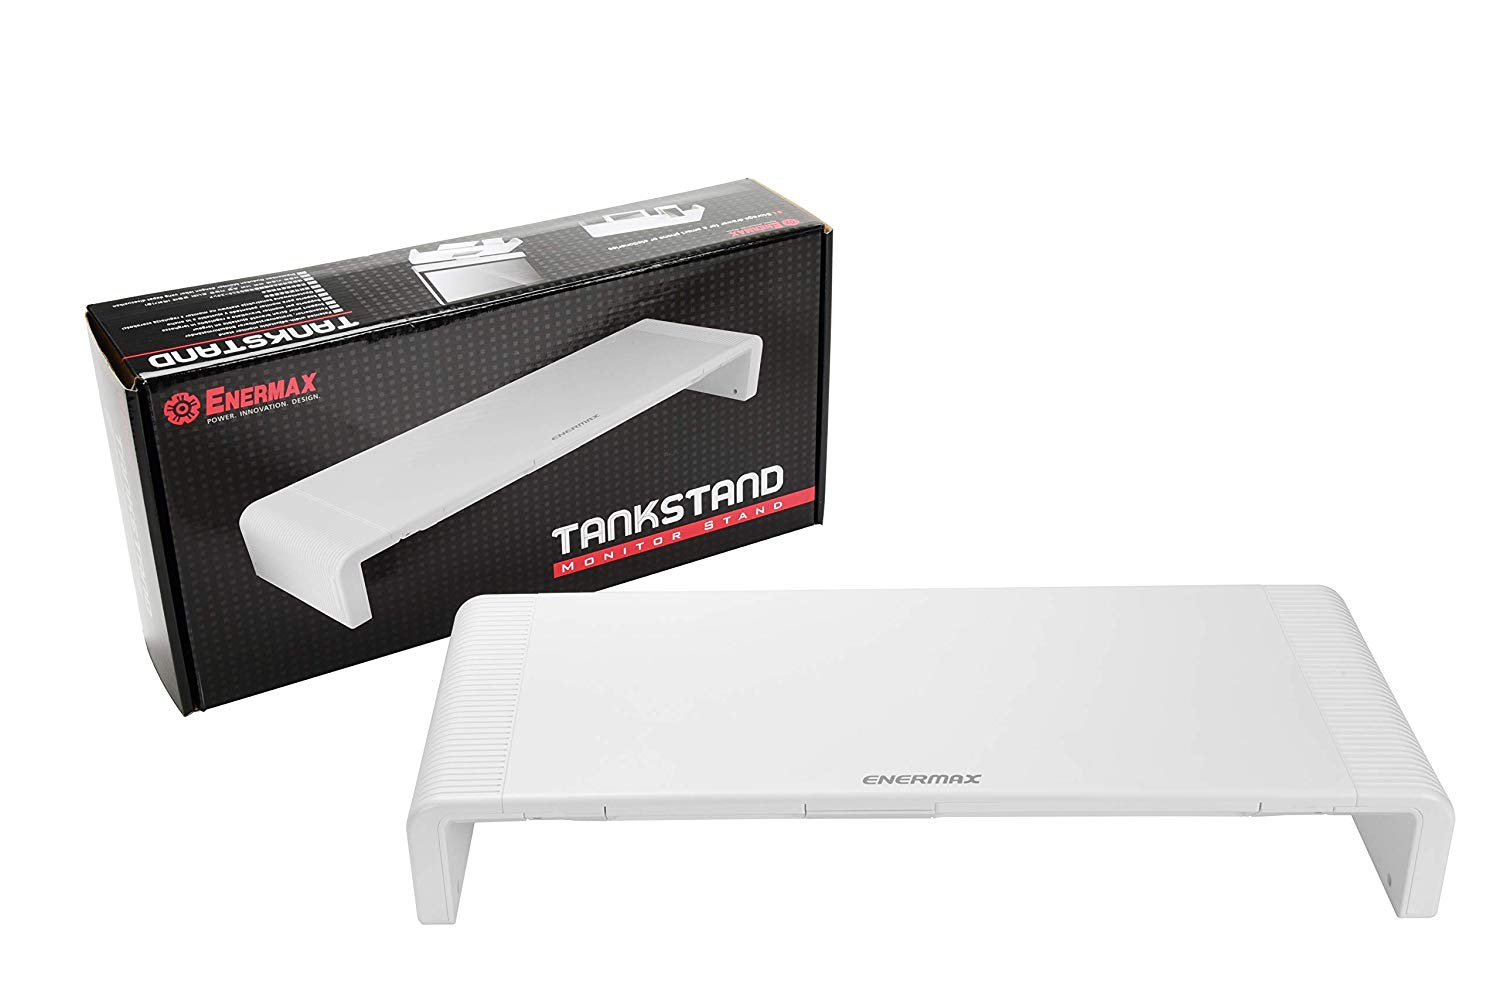 � Enermax Computer Monitor Stand / TV / Game Console Tankstand (White) - NEW �